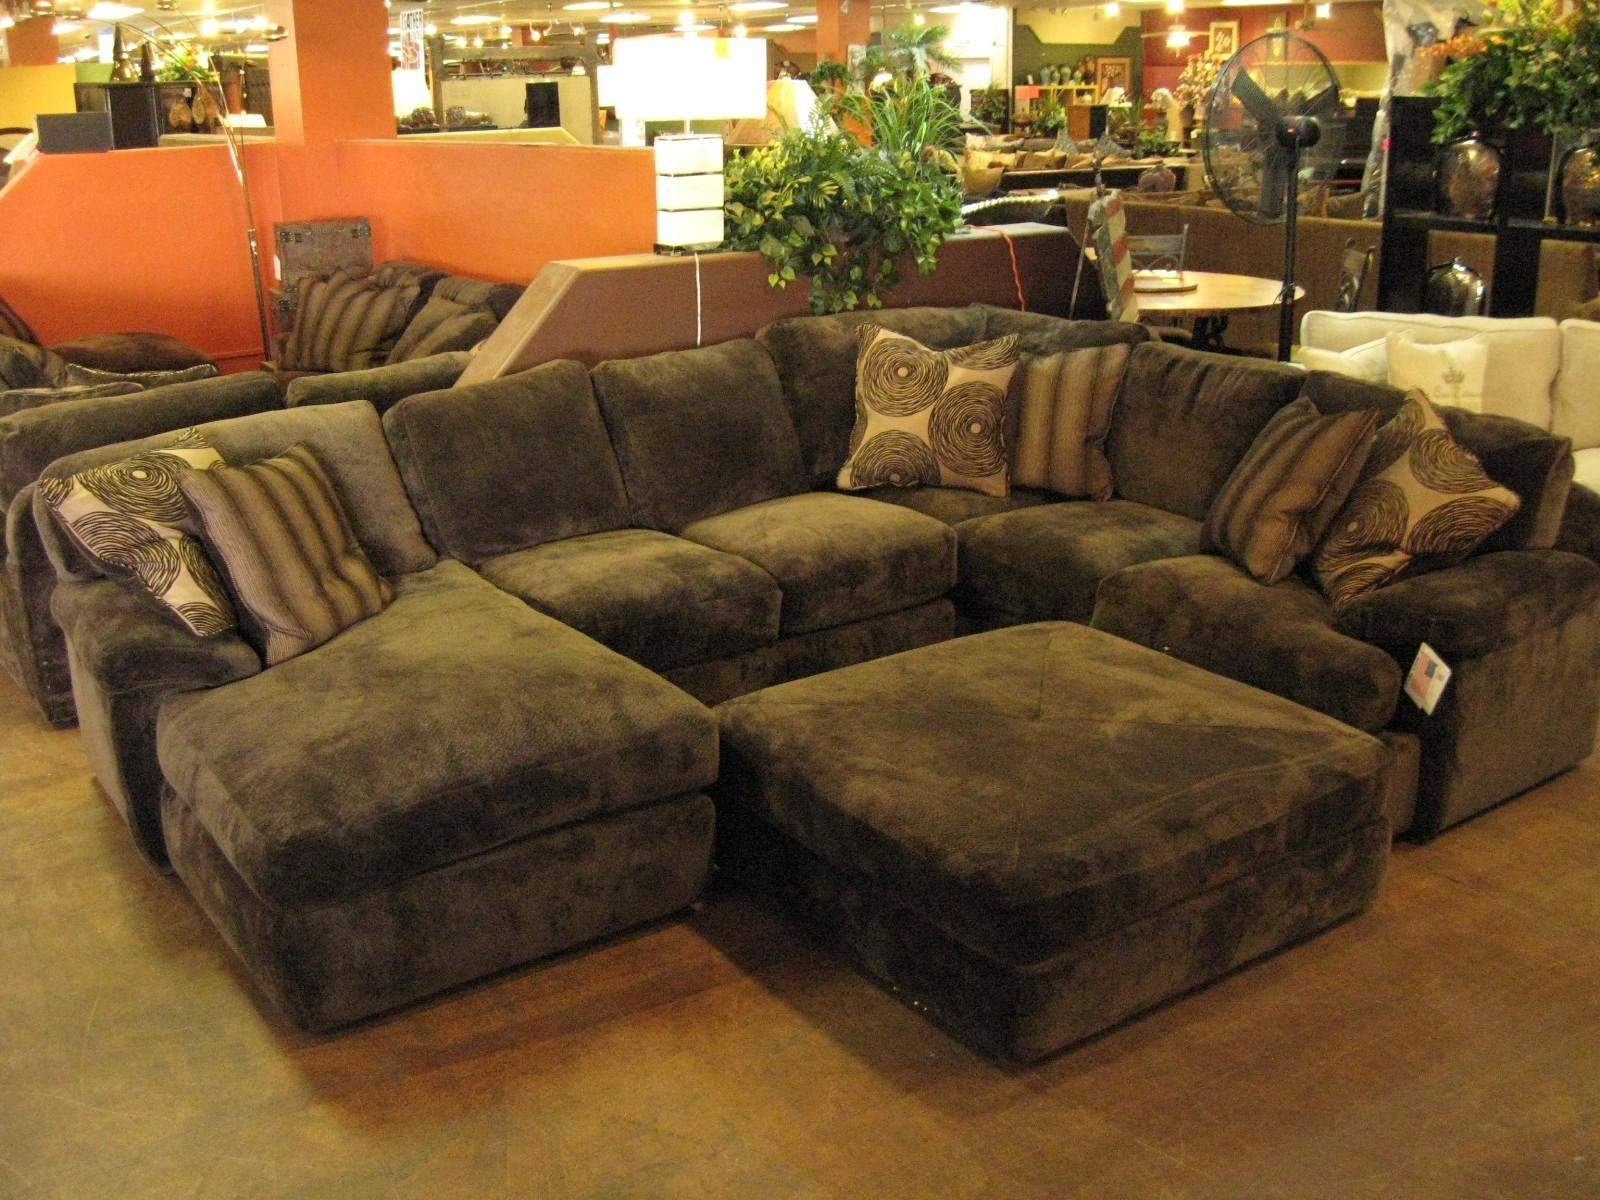 Featured Image of Sectional Sofa With Large Ottoman